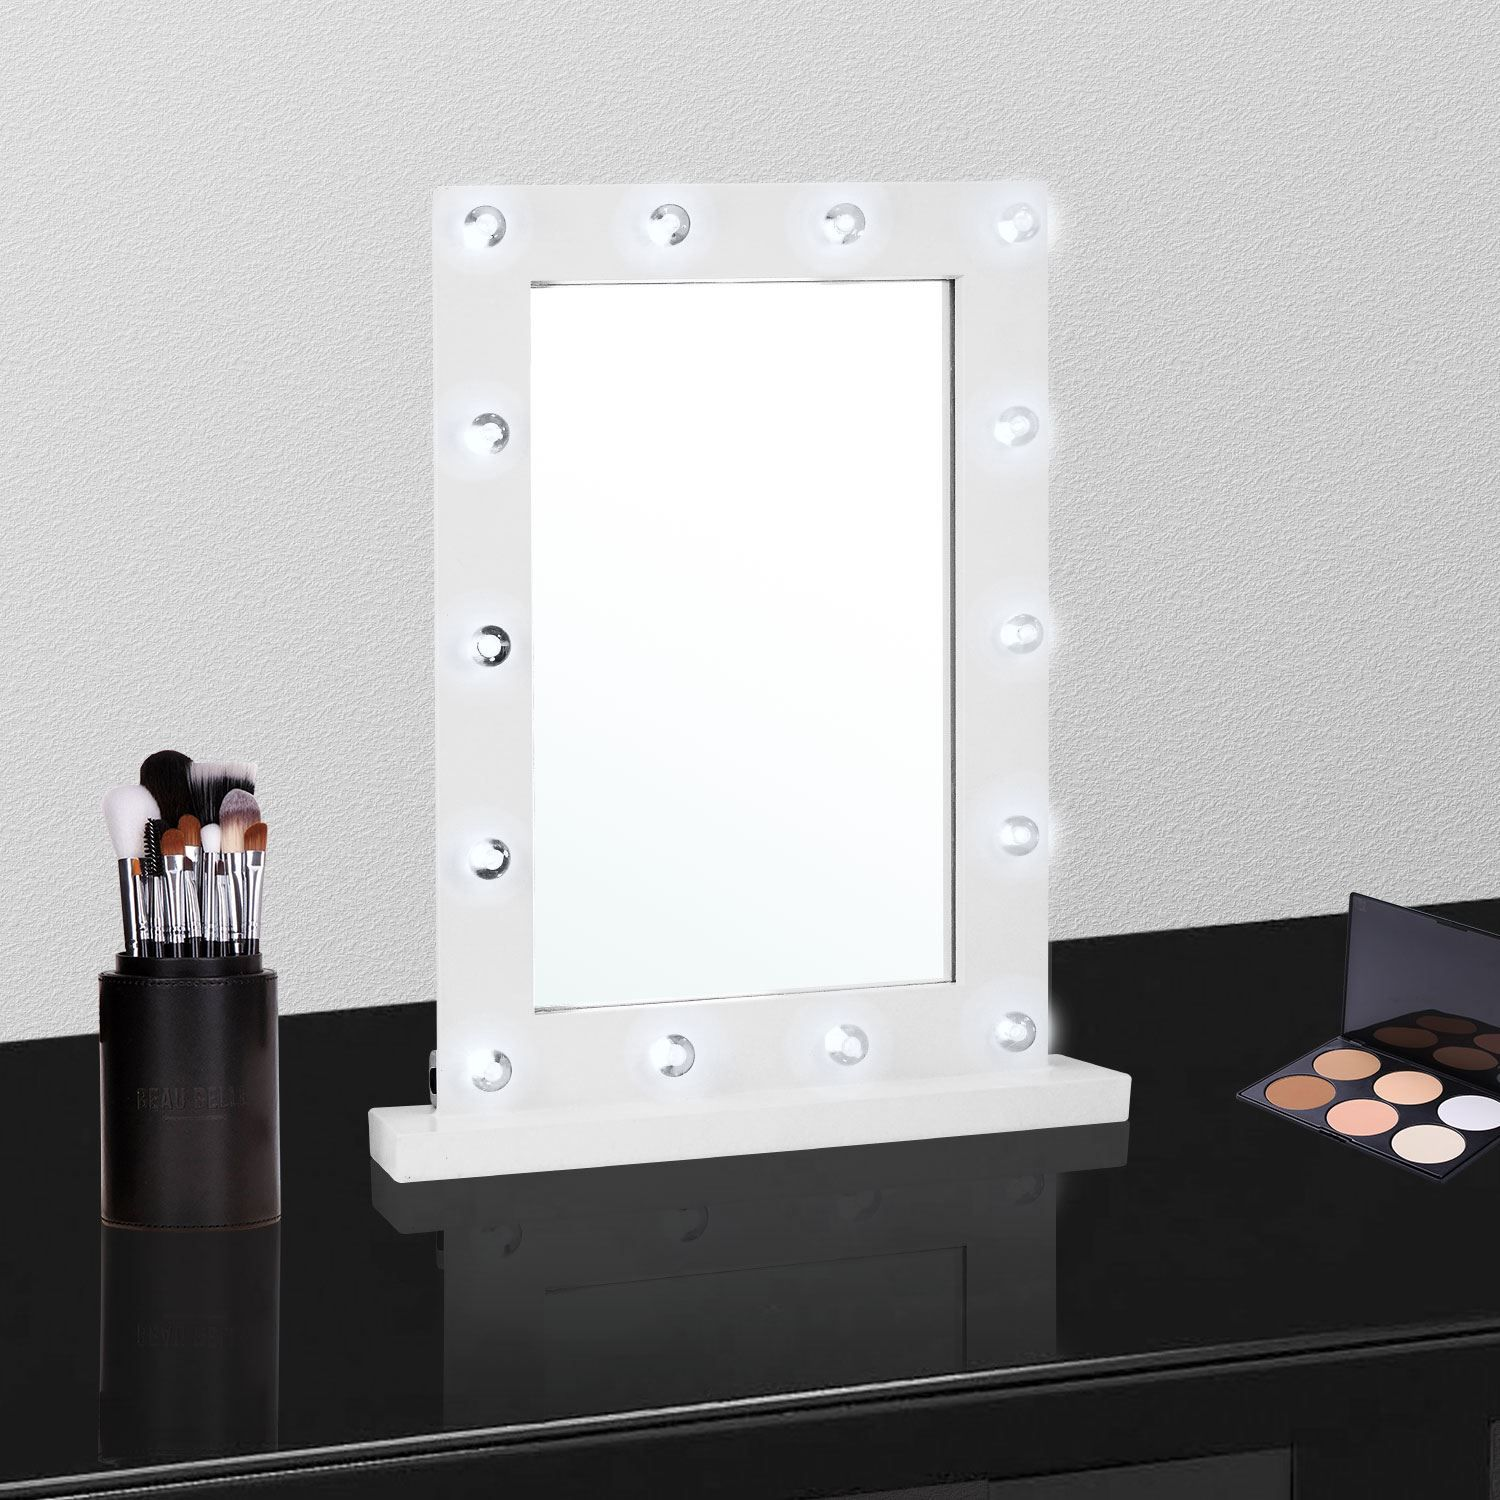 Details about Large Vanity Mirror with Light Hollywood